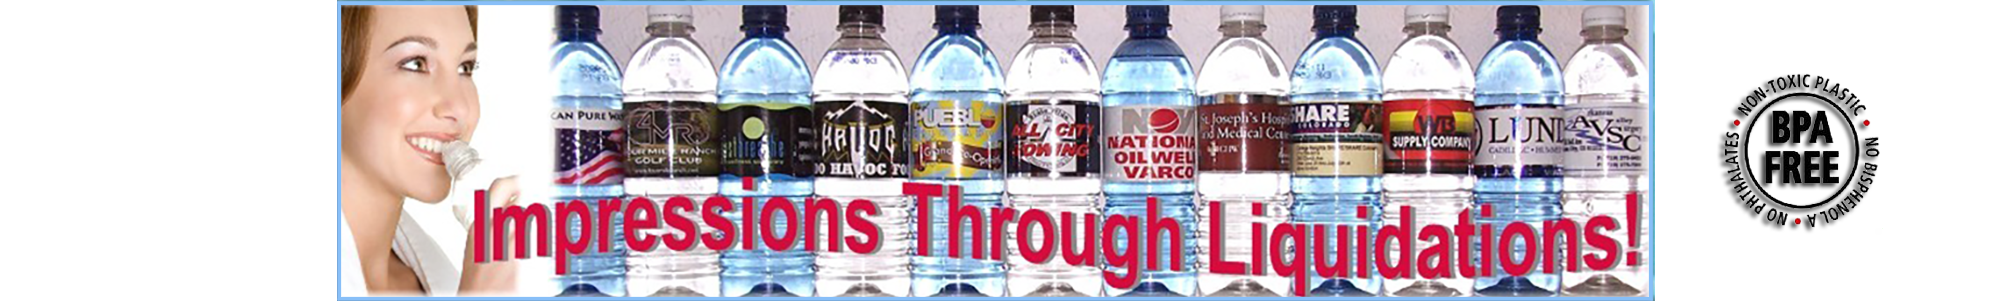 Offering custom bottled water in Denver, CO